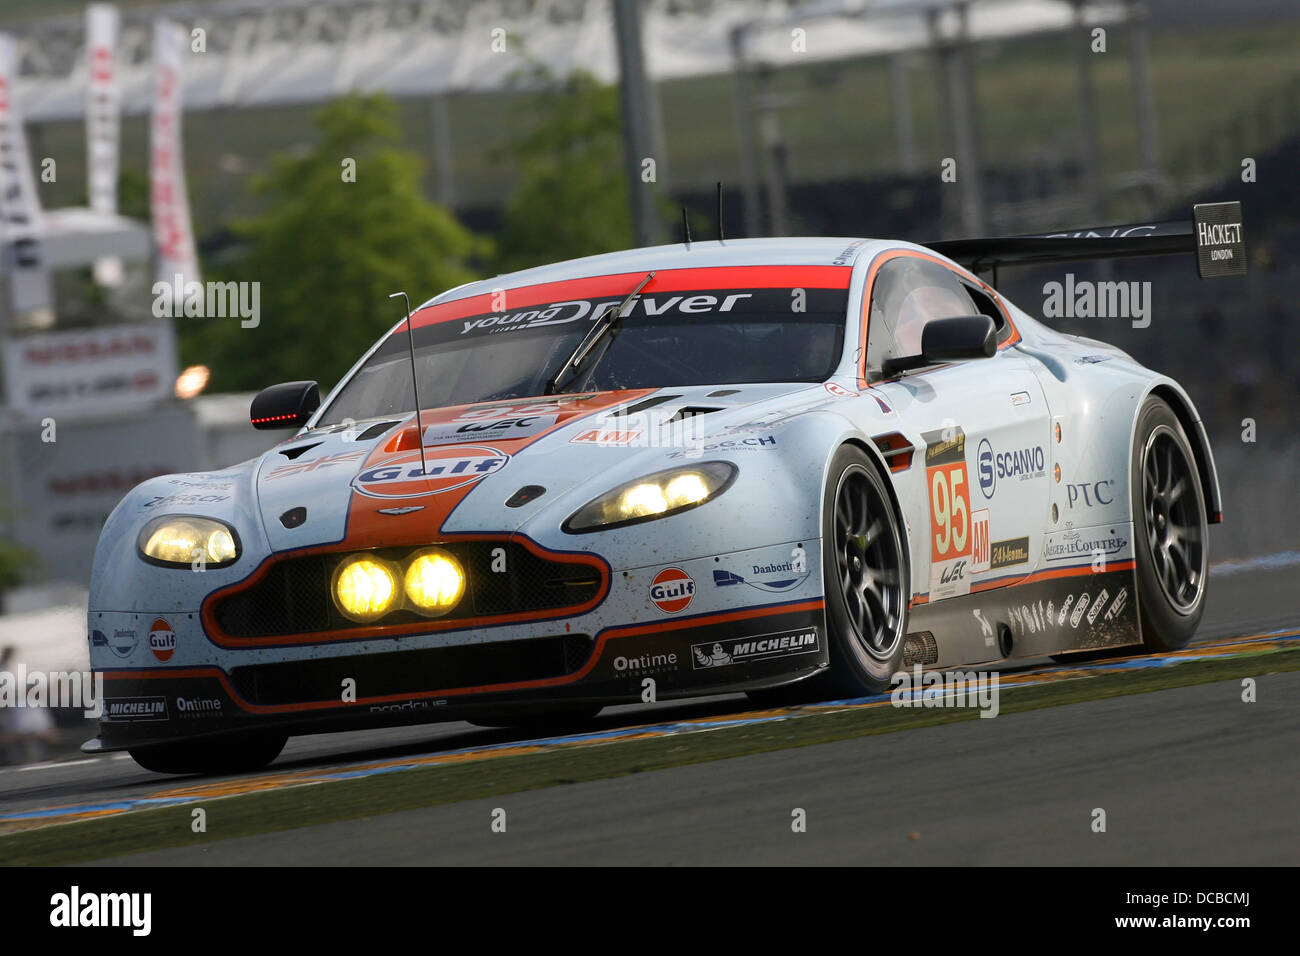 aston martin racing stock photos aston martin racing stock images alamy. Black Bedroom Furniture Sets. Home Design Ideas